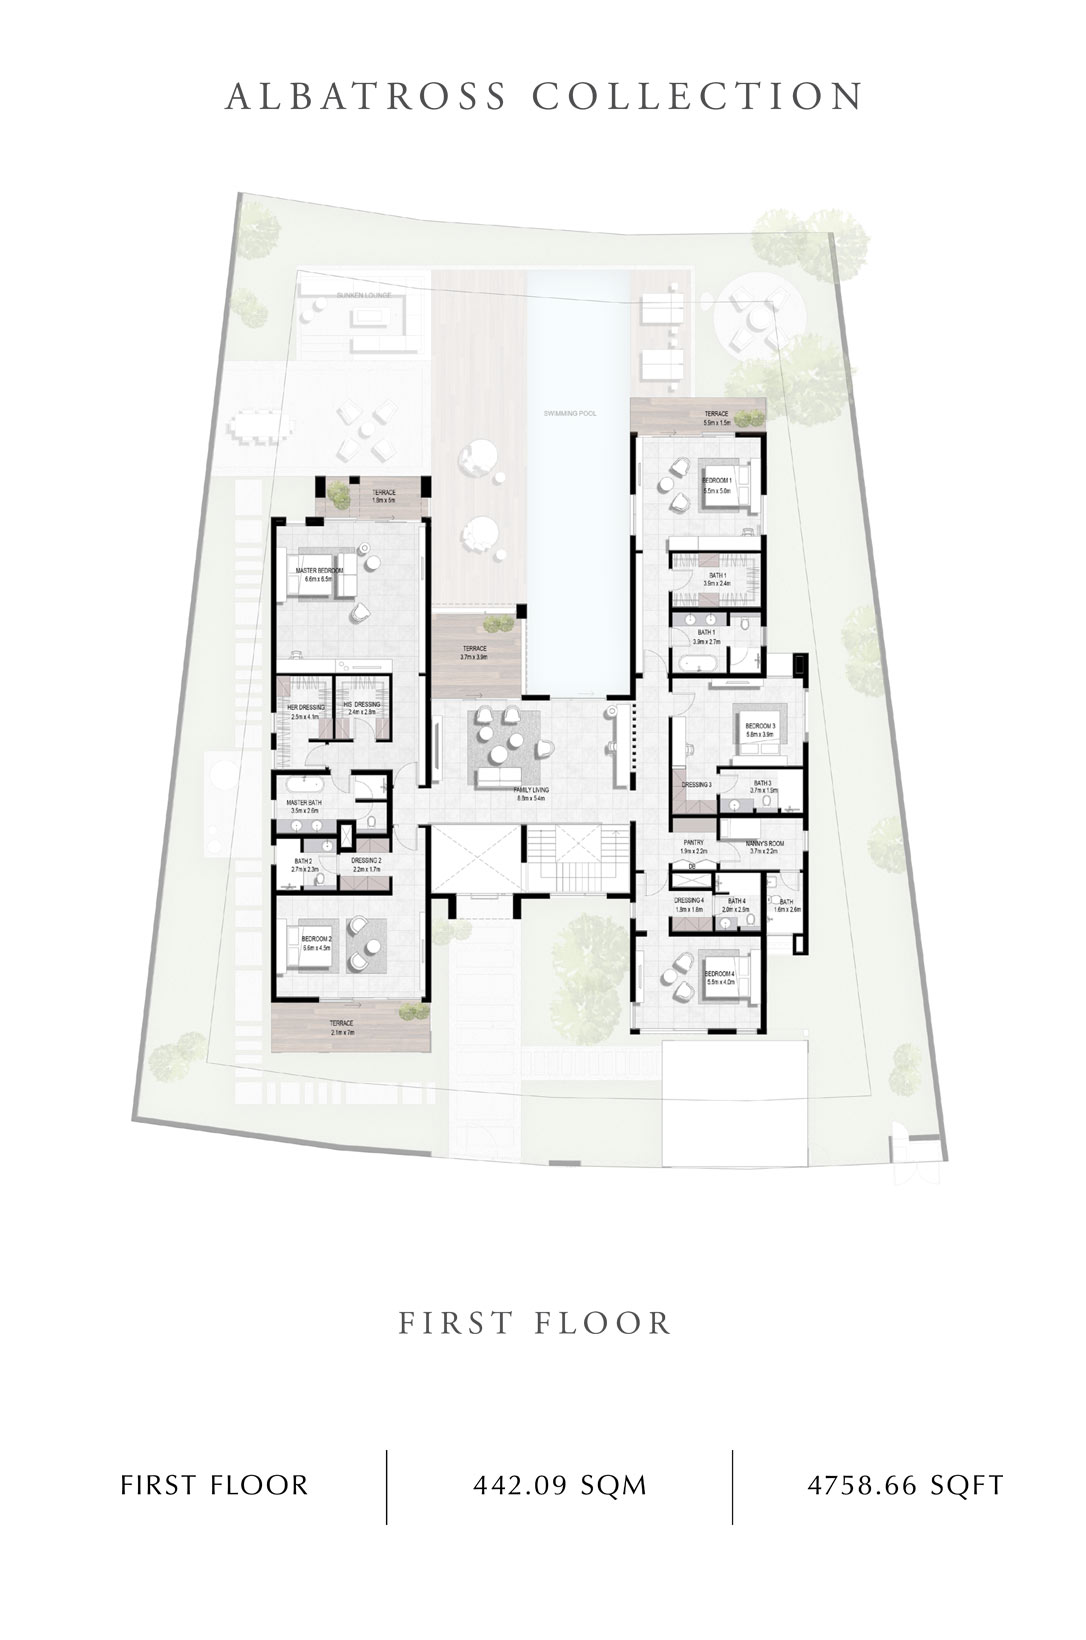 Albatross-Collection-First Floor, Size 4758 Sq Ft